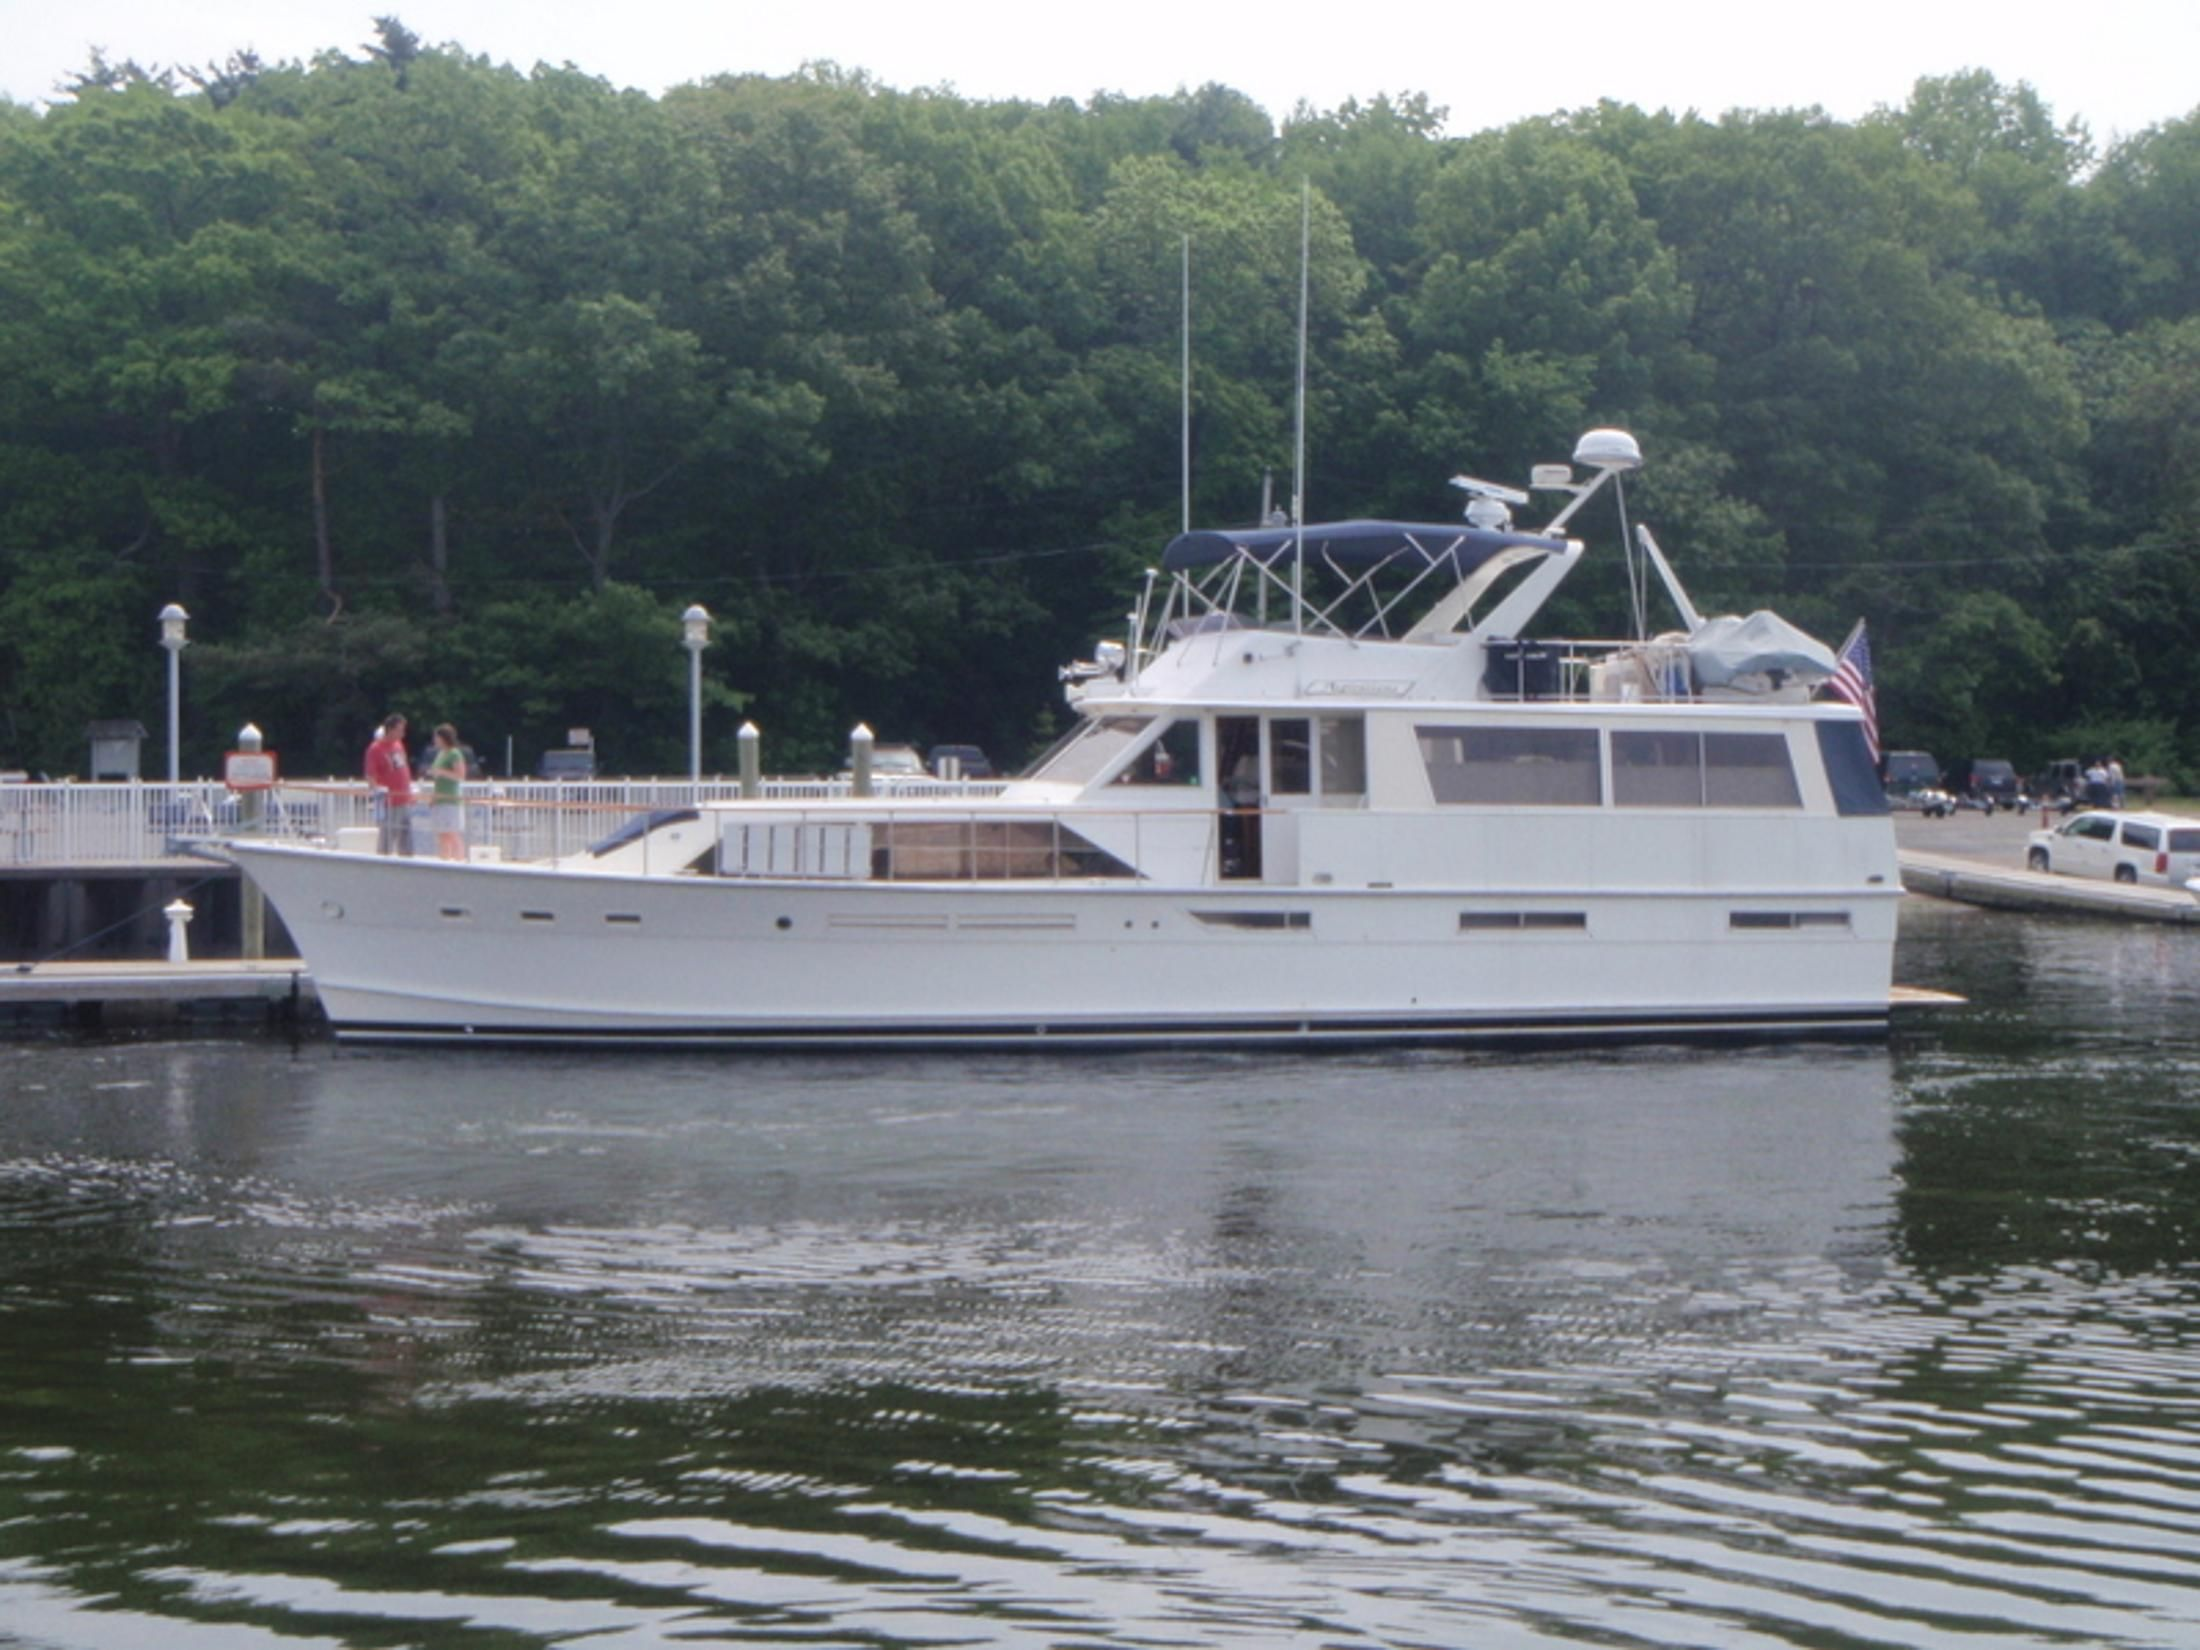 1977 Pacemaker Motor Yacht Power New And Used Boats For Sale